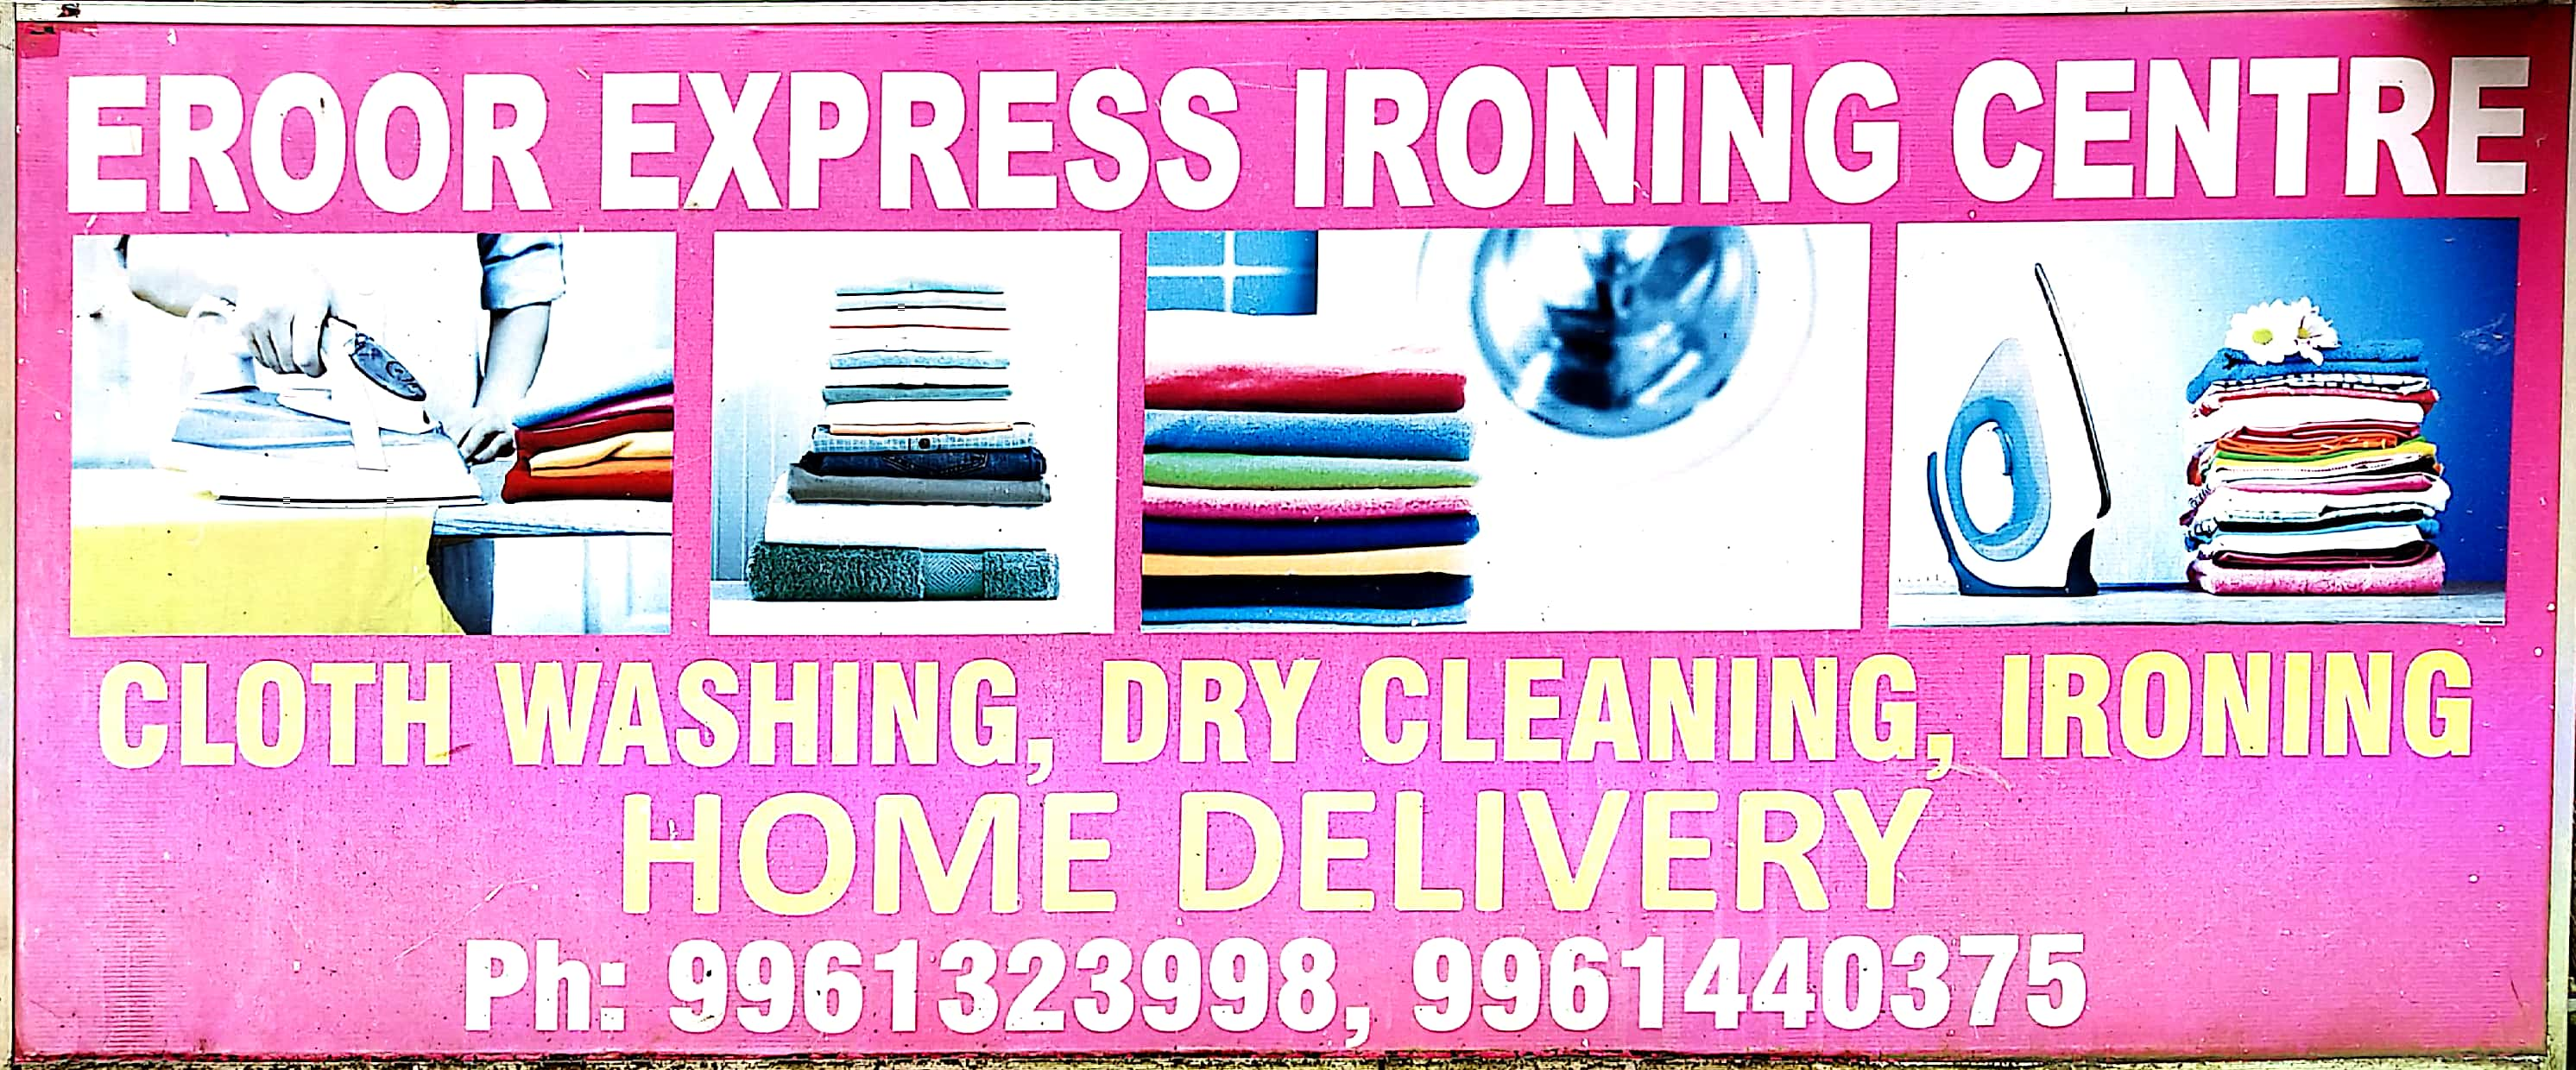 EROOR EXPRESS IRONING CENTER, IORNING SHOP,  service in Thrippunithura, Ernakulam